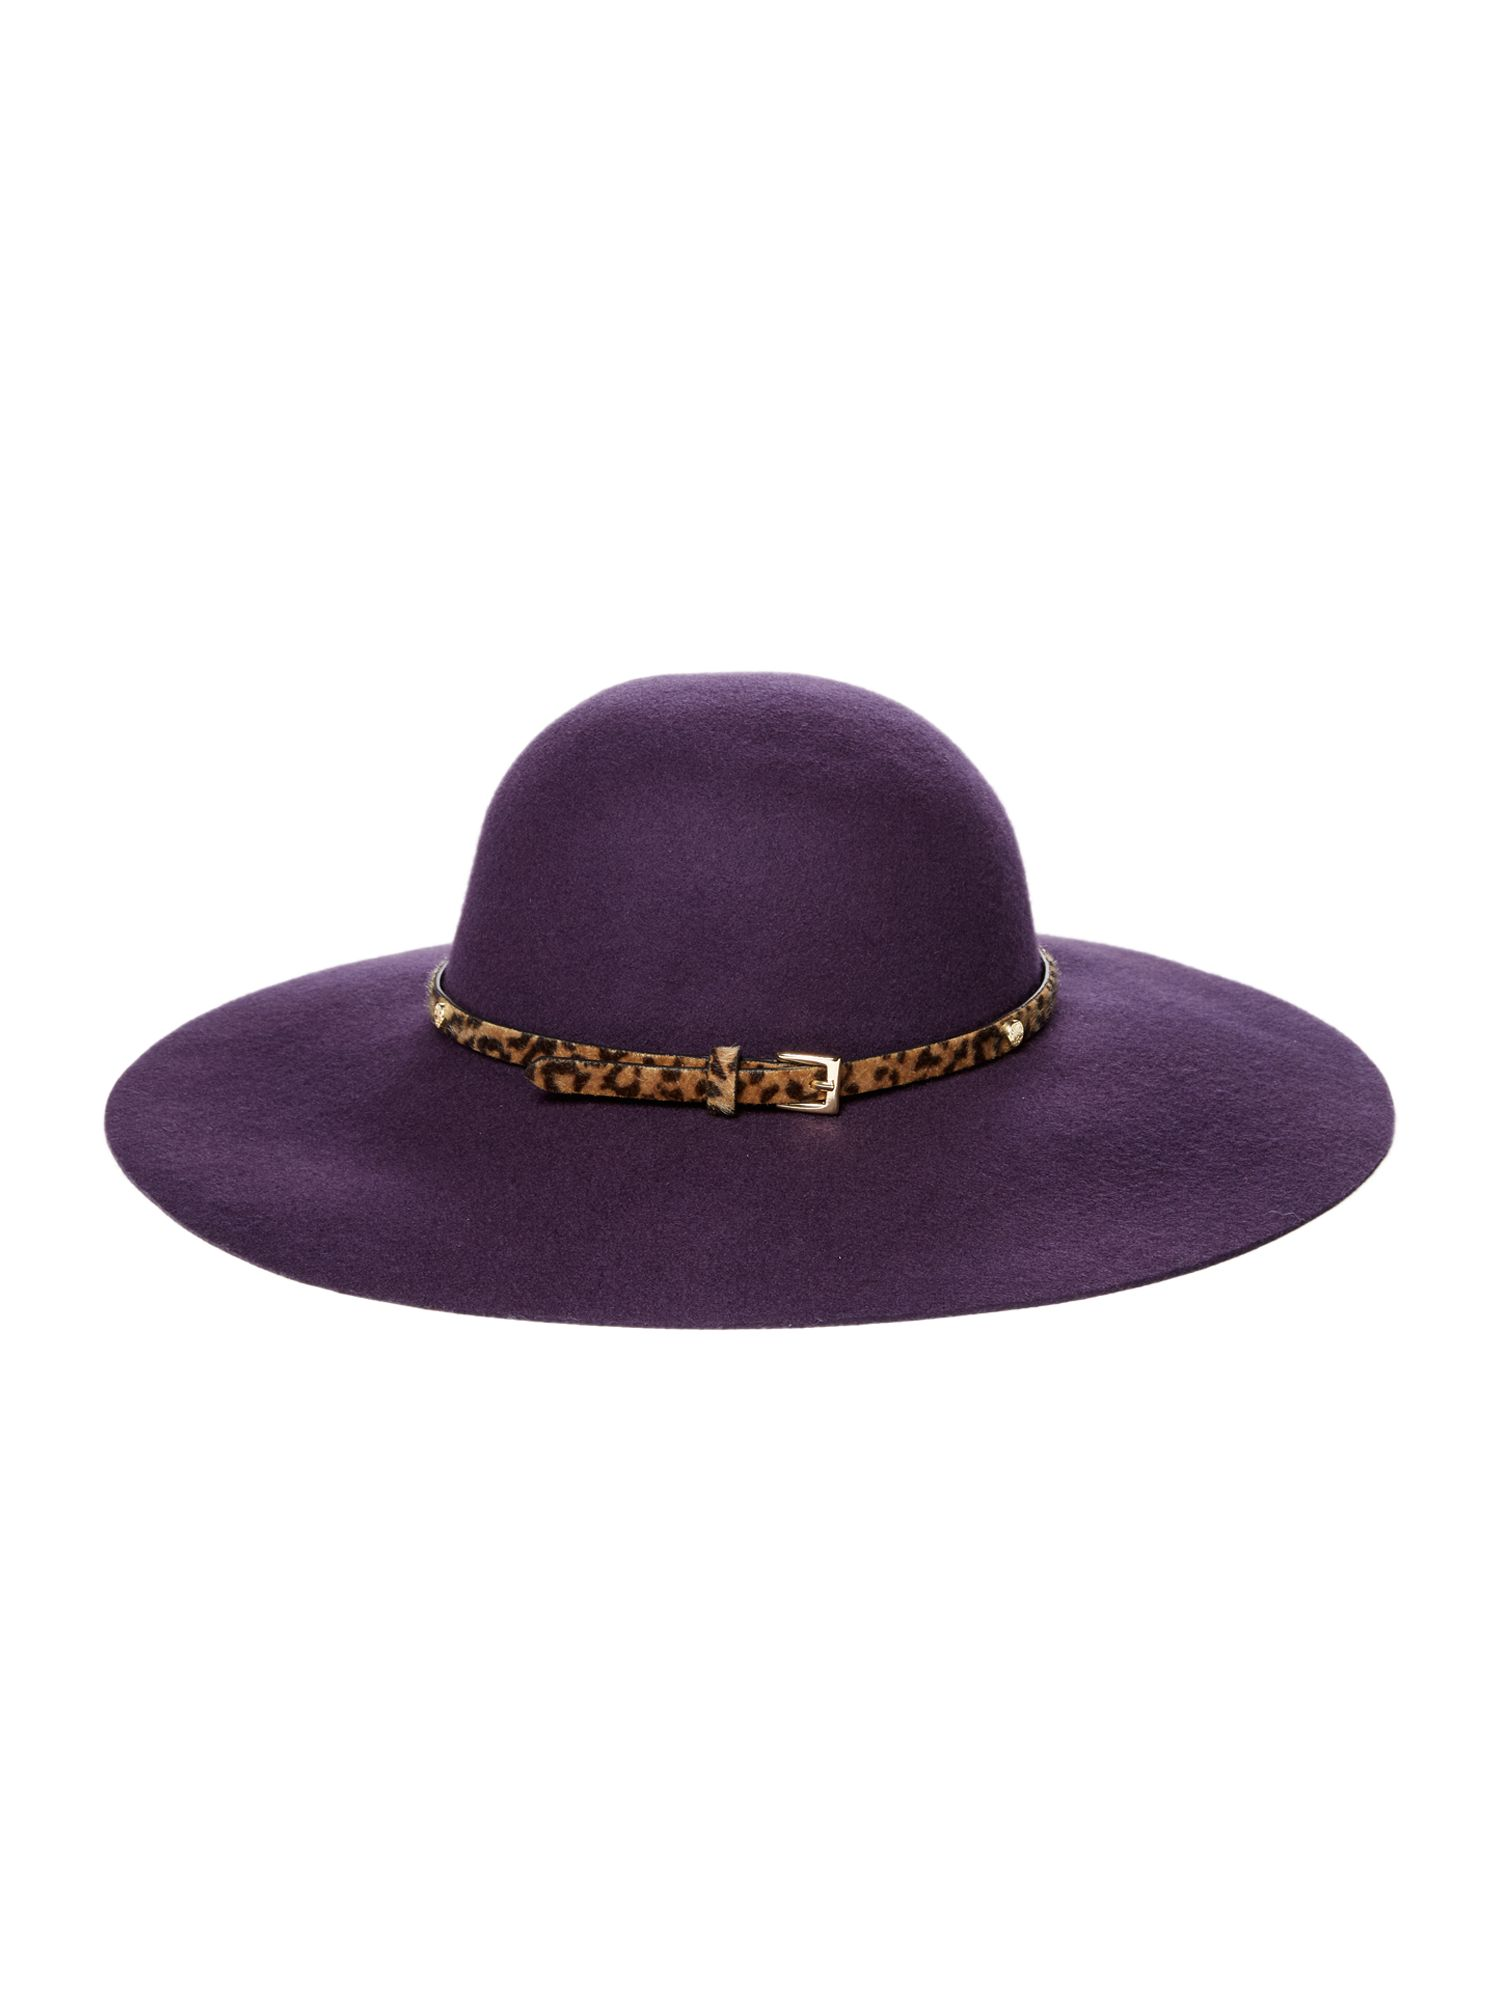 Biba Biba Biba Floppy Felt Hat, Purple